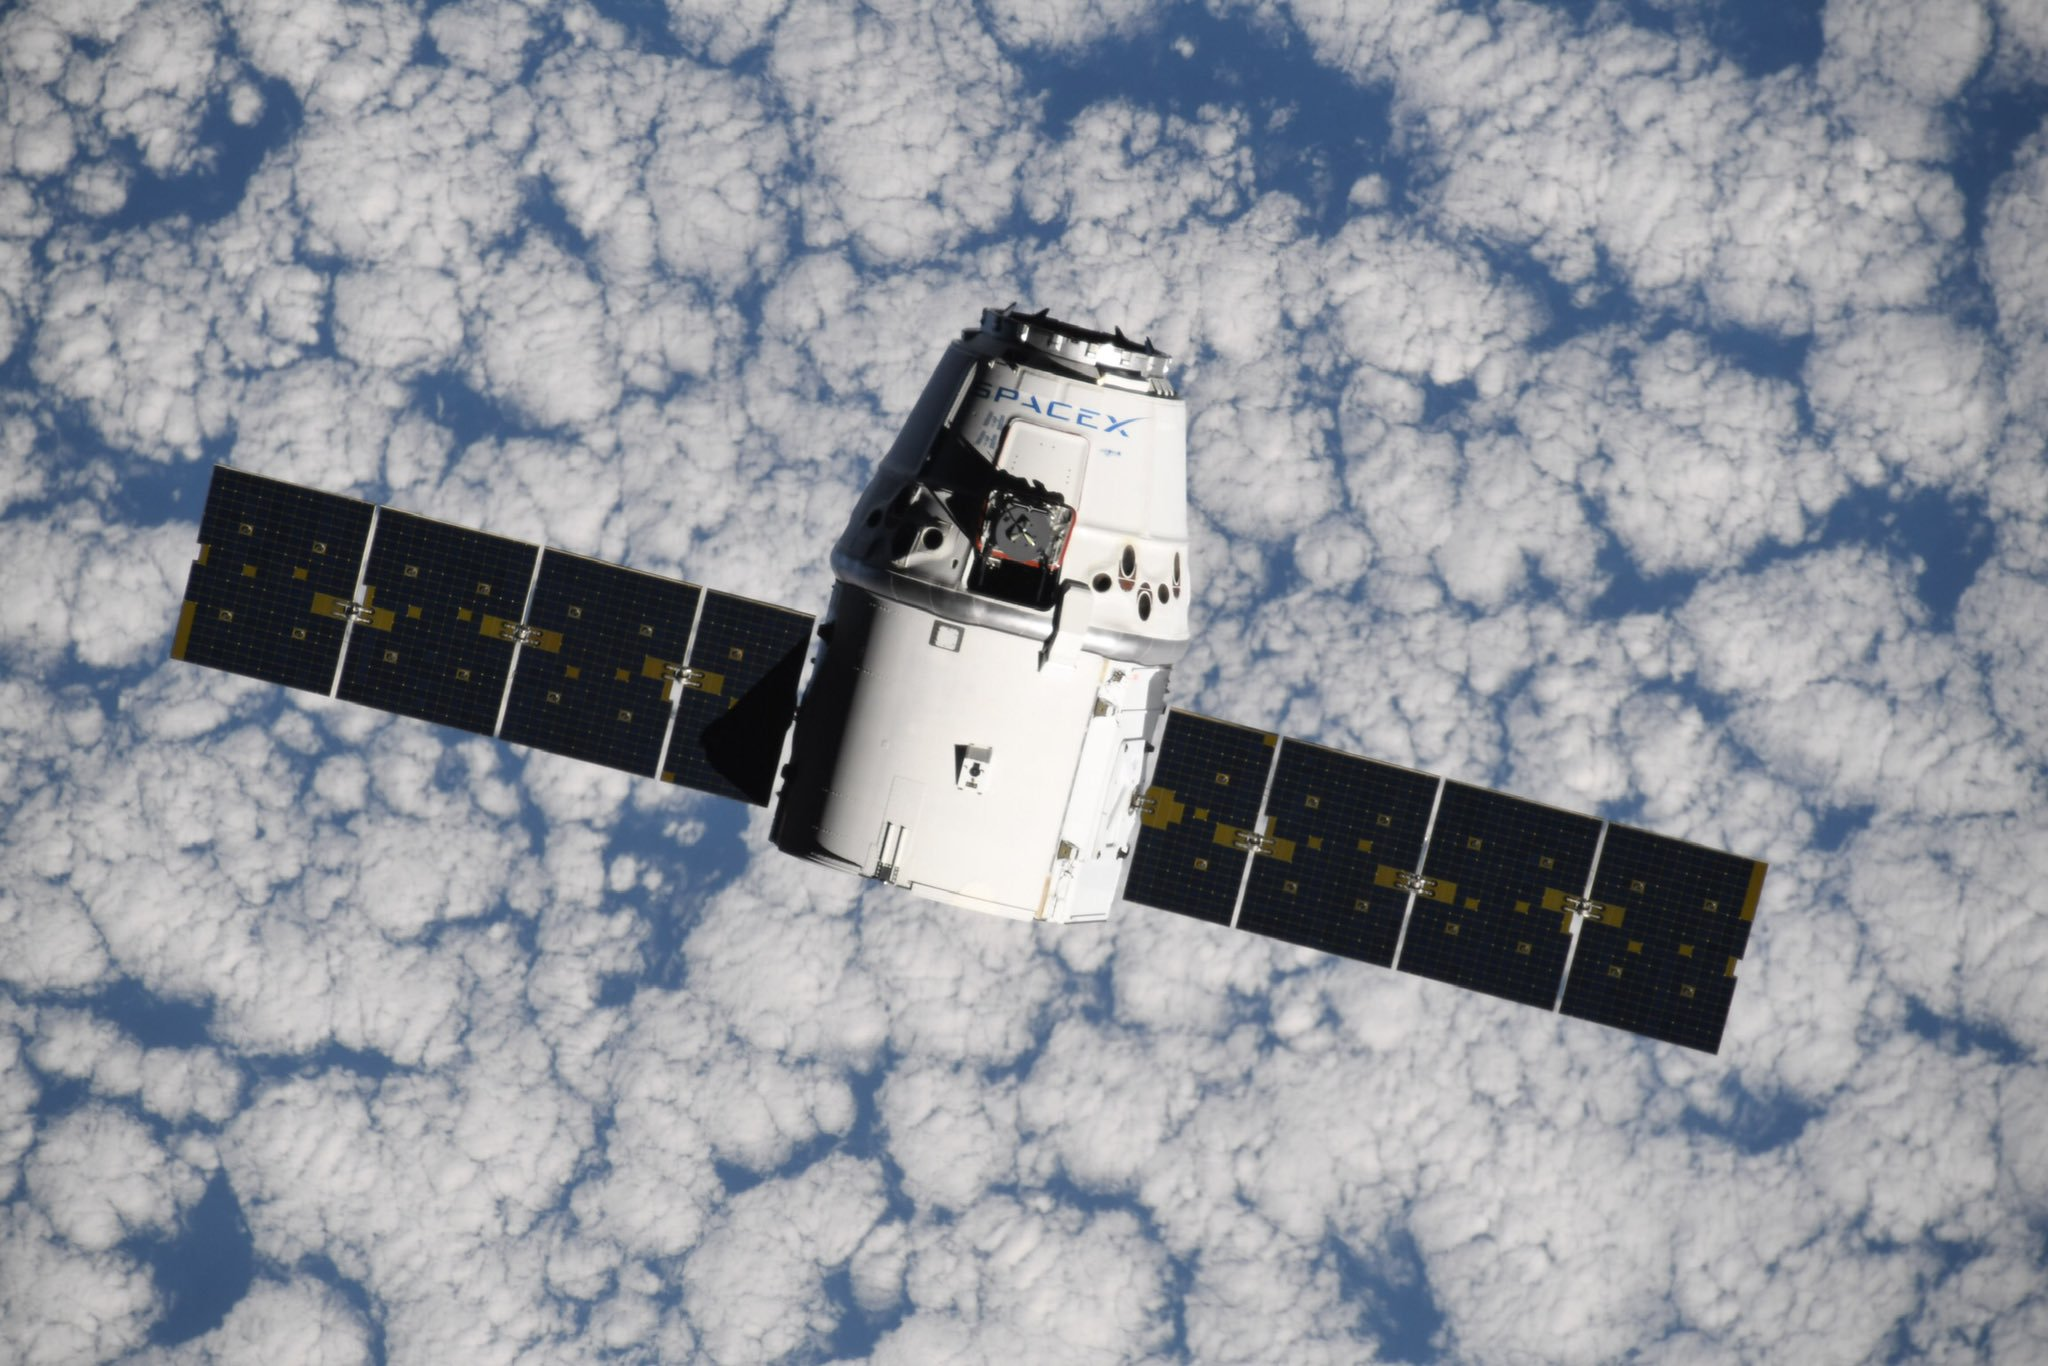 The CRS-18 Dragon capsule rendezvous with the ISS. Credit: NASA